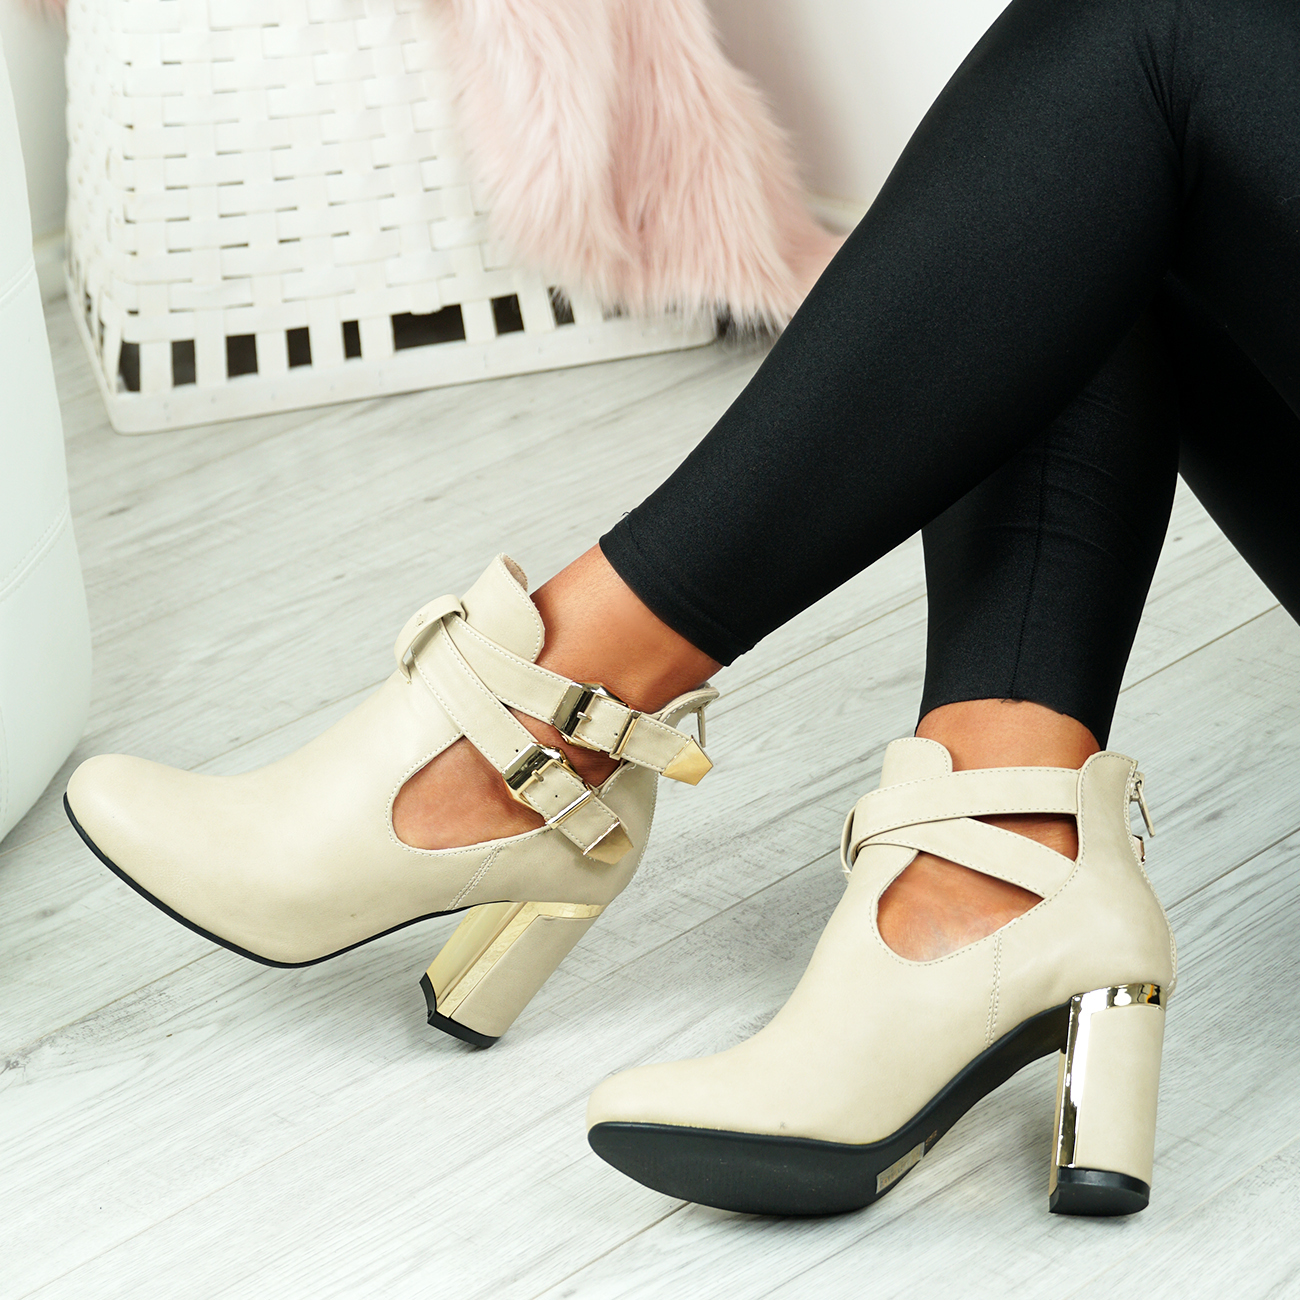 LADIES-WOMENS-BUCKLE-CUT-OUT-ANKLE-BOOTS-HIGH-BLOCK-HEELS-SHOES-SIZE